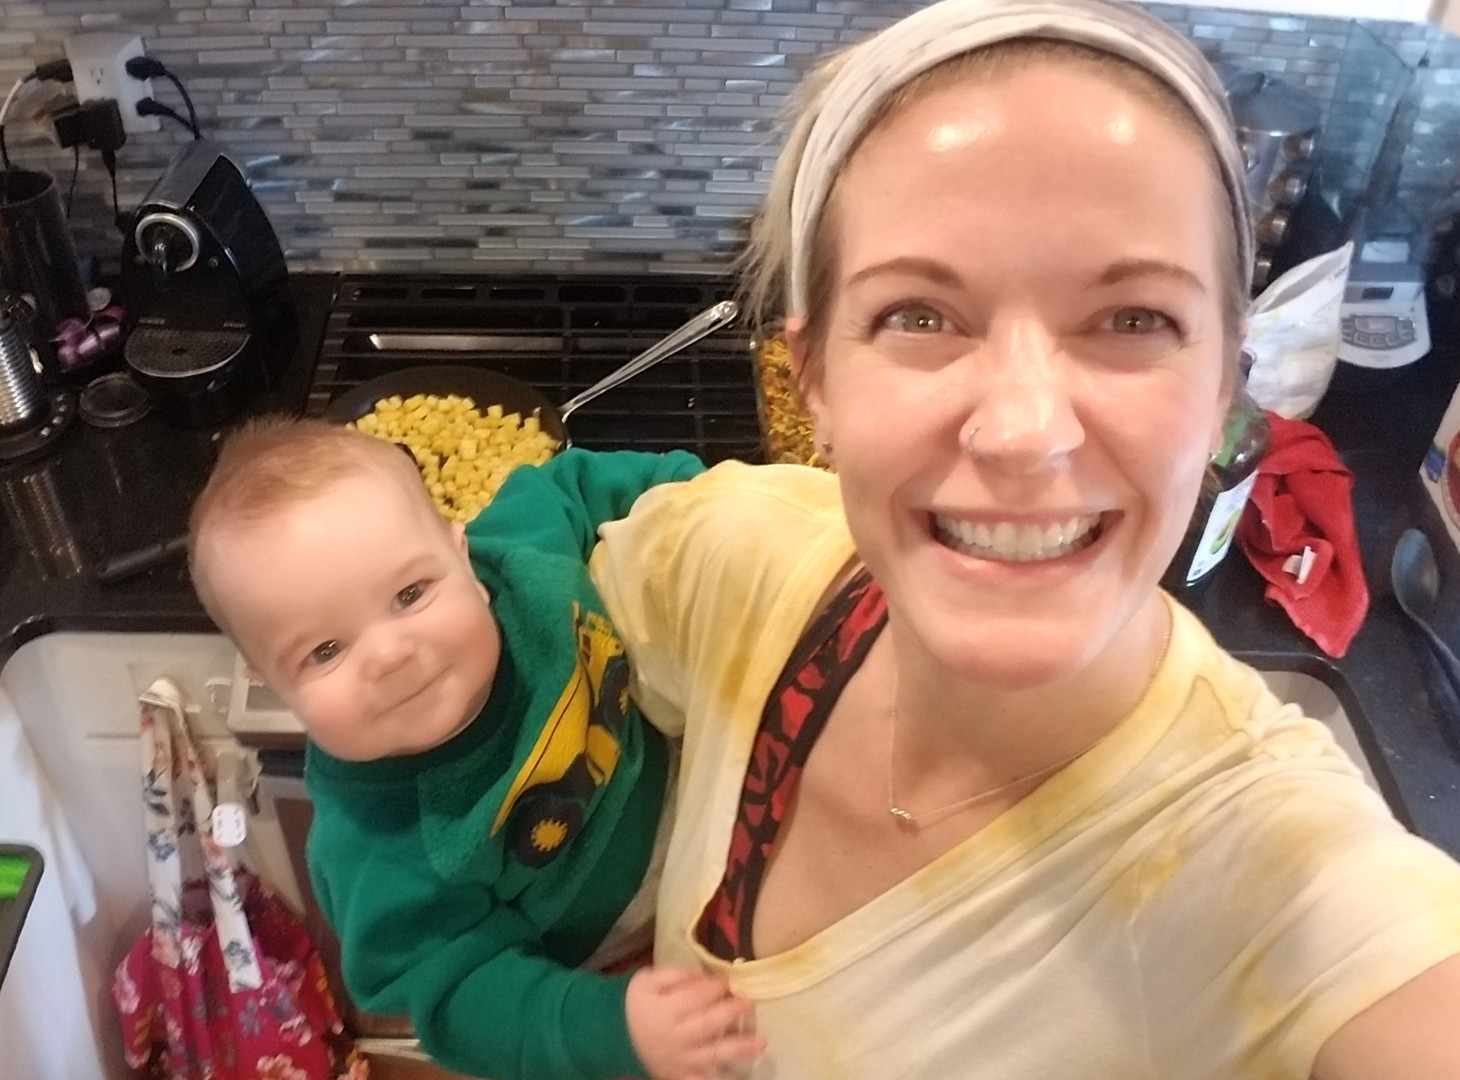 Mom%20and%20baby%20boy%20in%20kitchen_ed